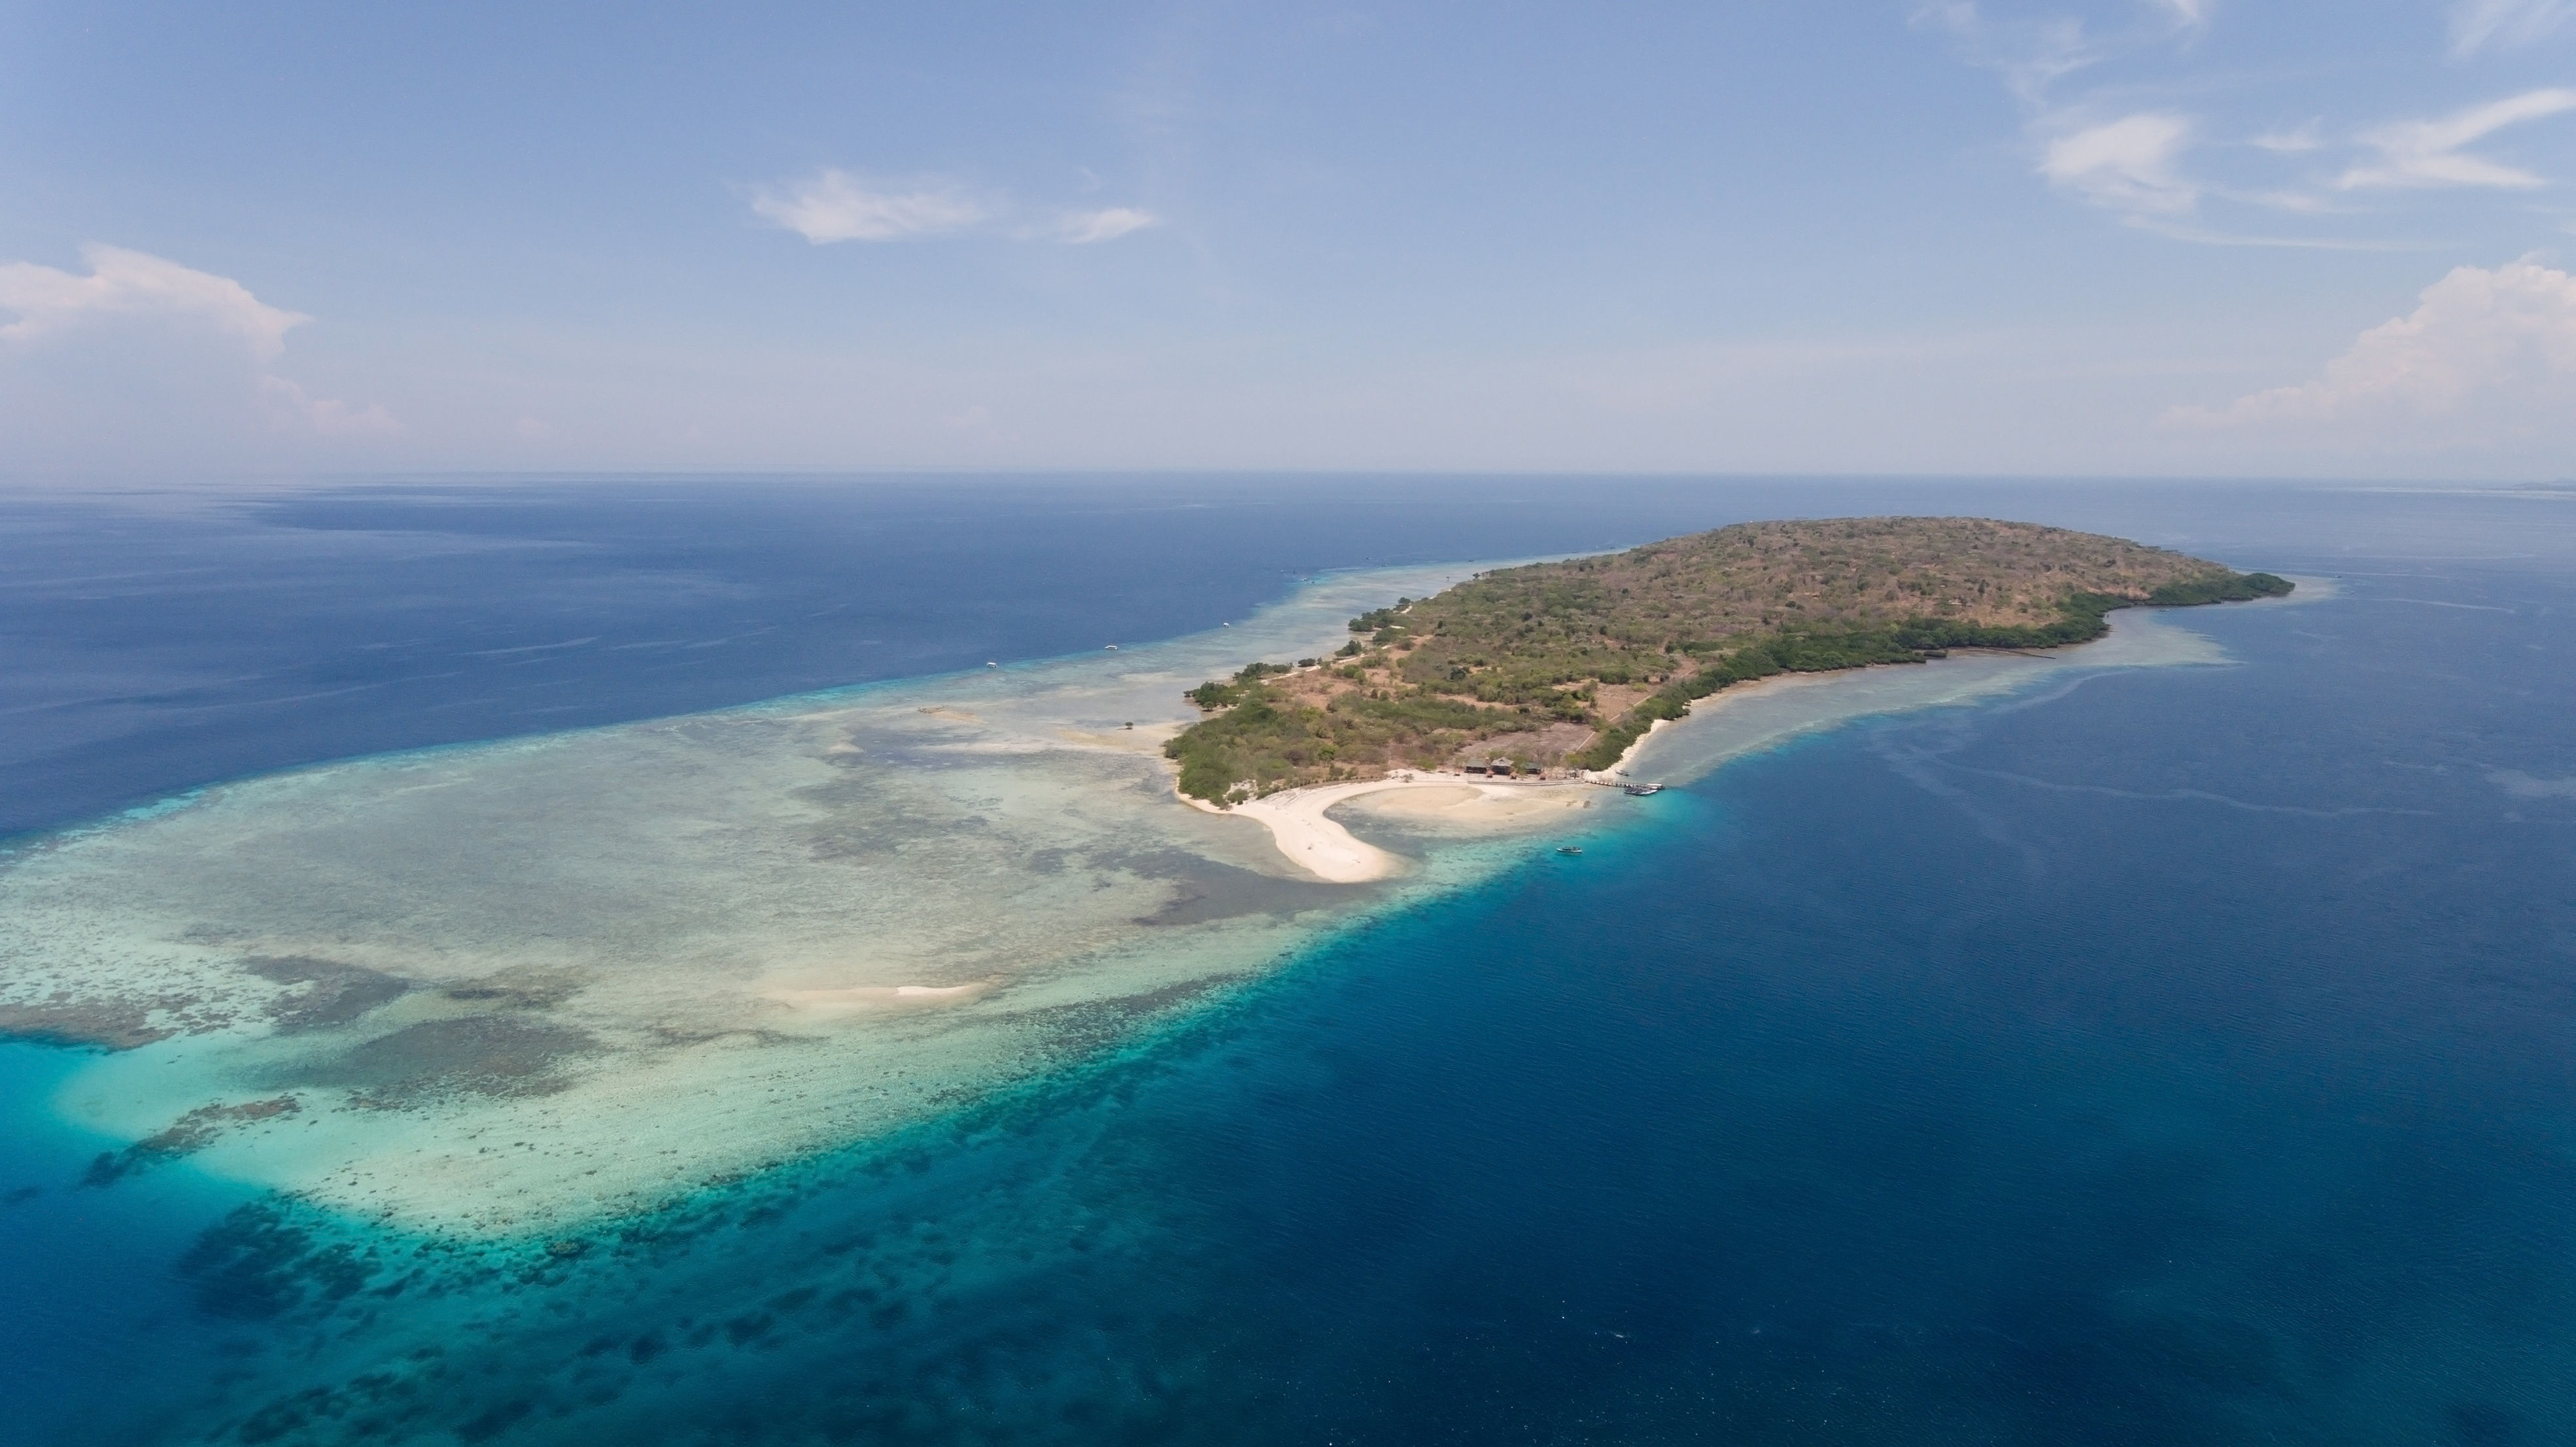 Aerial view tropical island Menjanga with white sand beach, coral reef, atoll and blue waters.